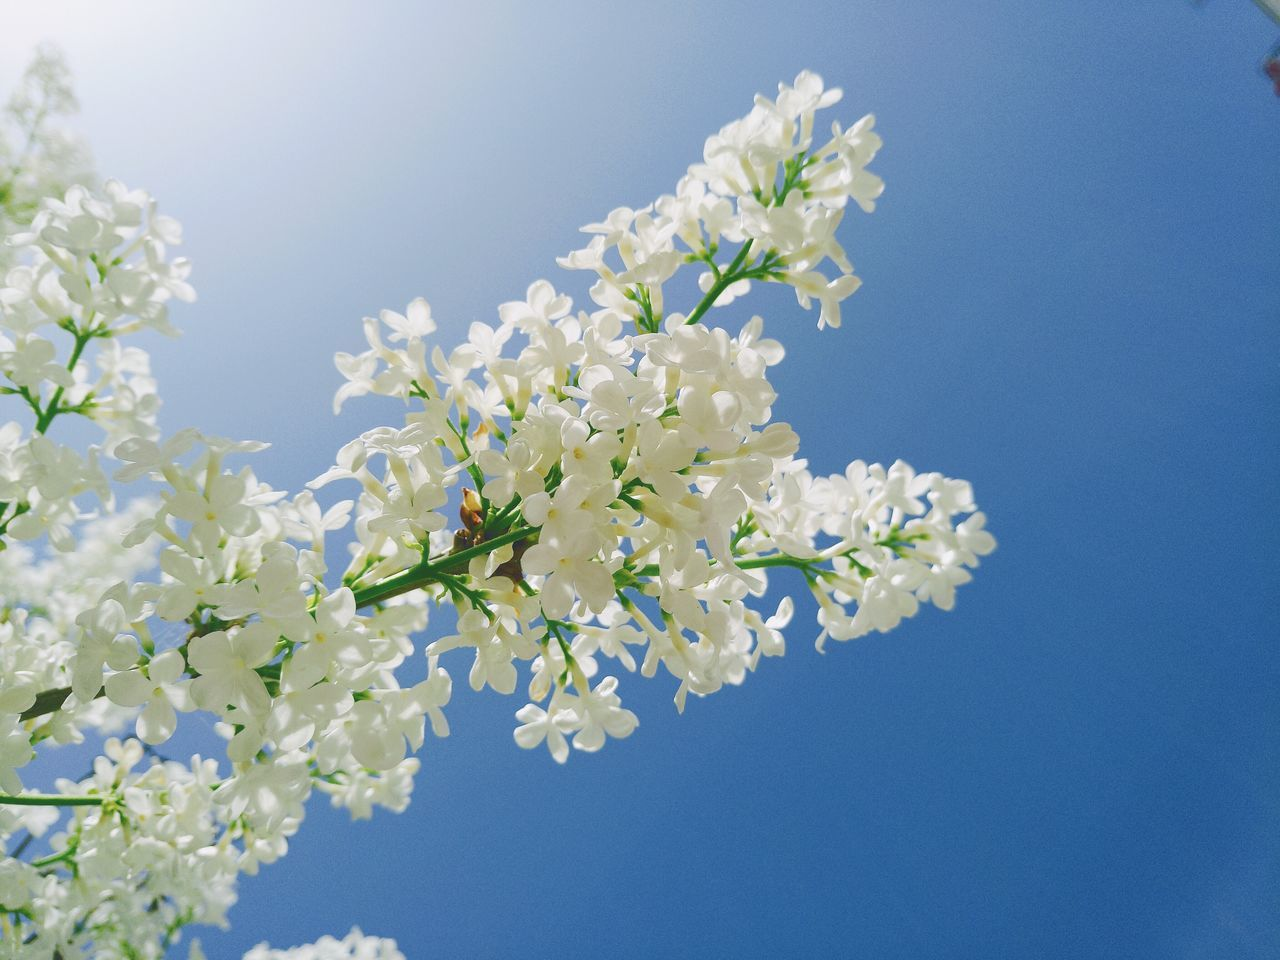 flower, fragility, beauty in nature, nature, white color, growth, freshness, blossom, tree, springtime, apple blossom, petal, clear sky, apple tree, branch, no people, low angle view, blooming, spring, day, blue, close-up, flower head, outdoors, sky